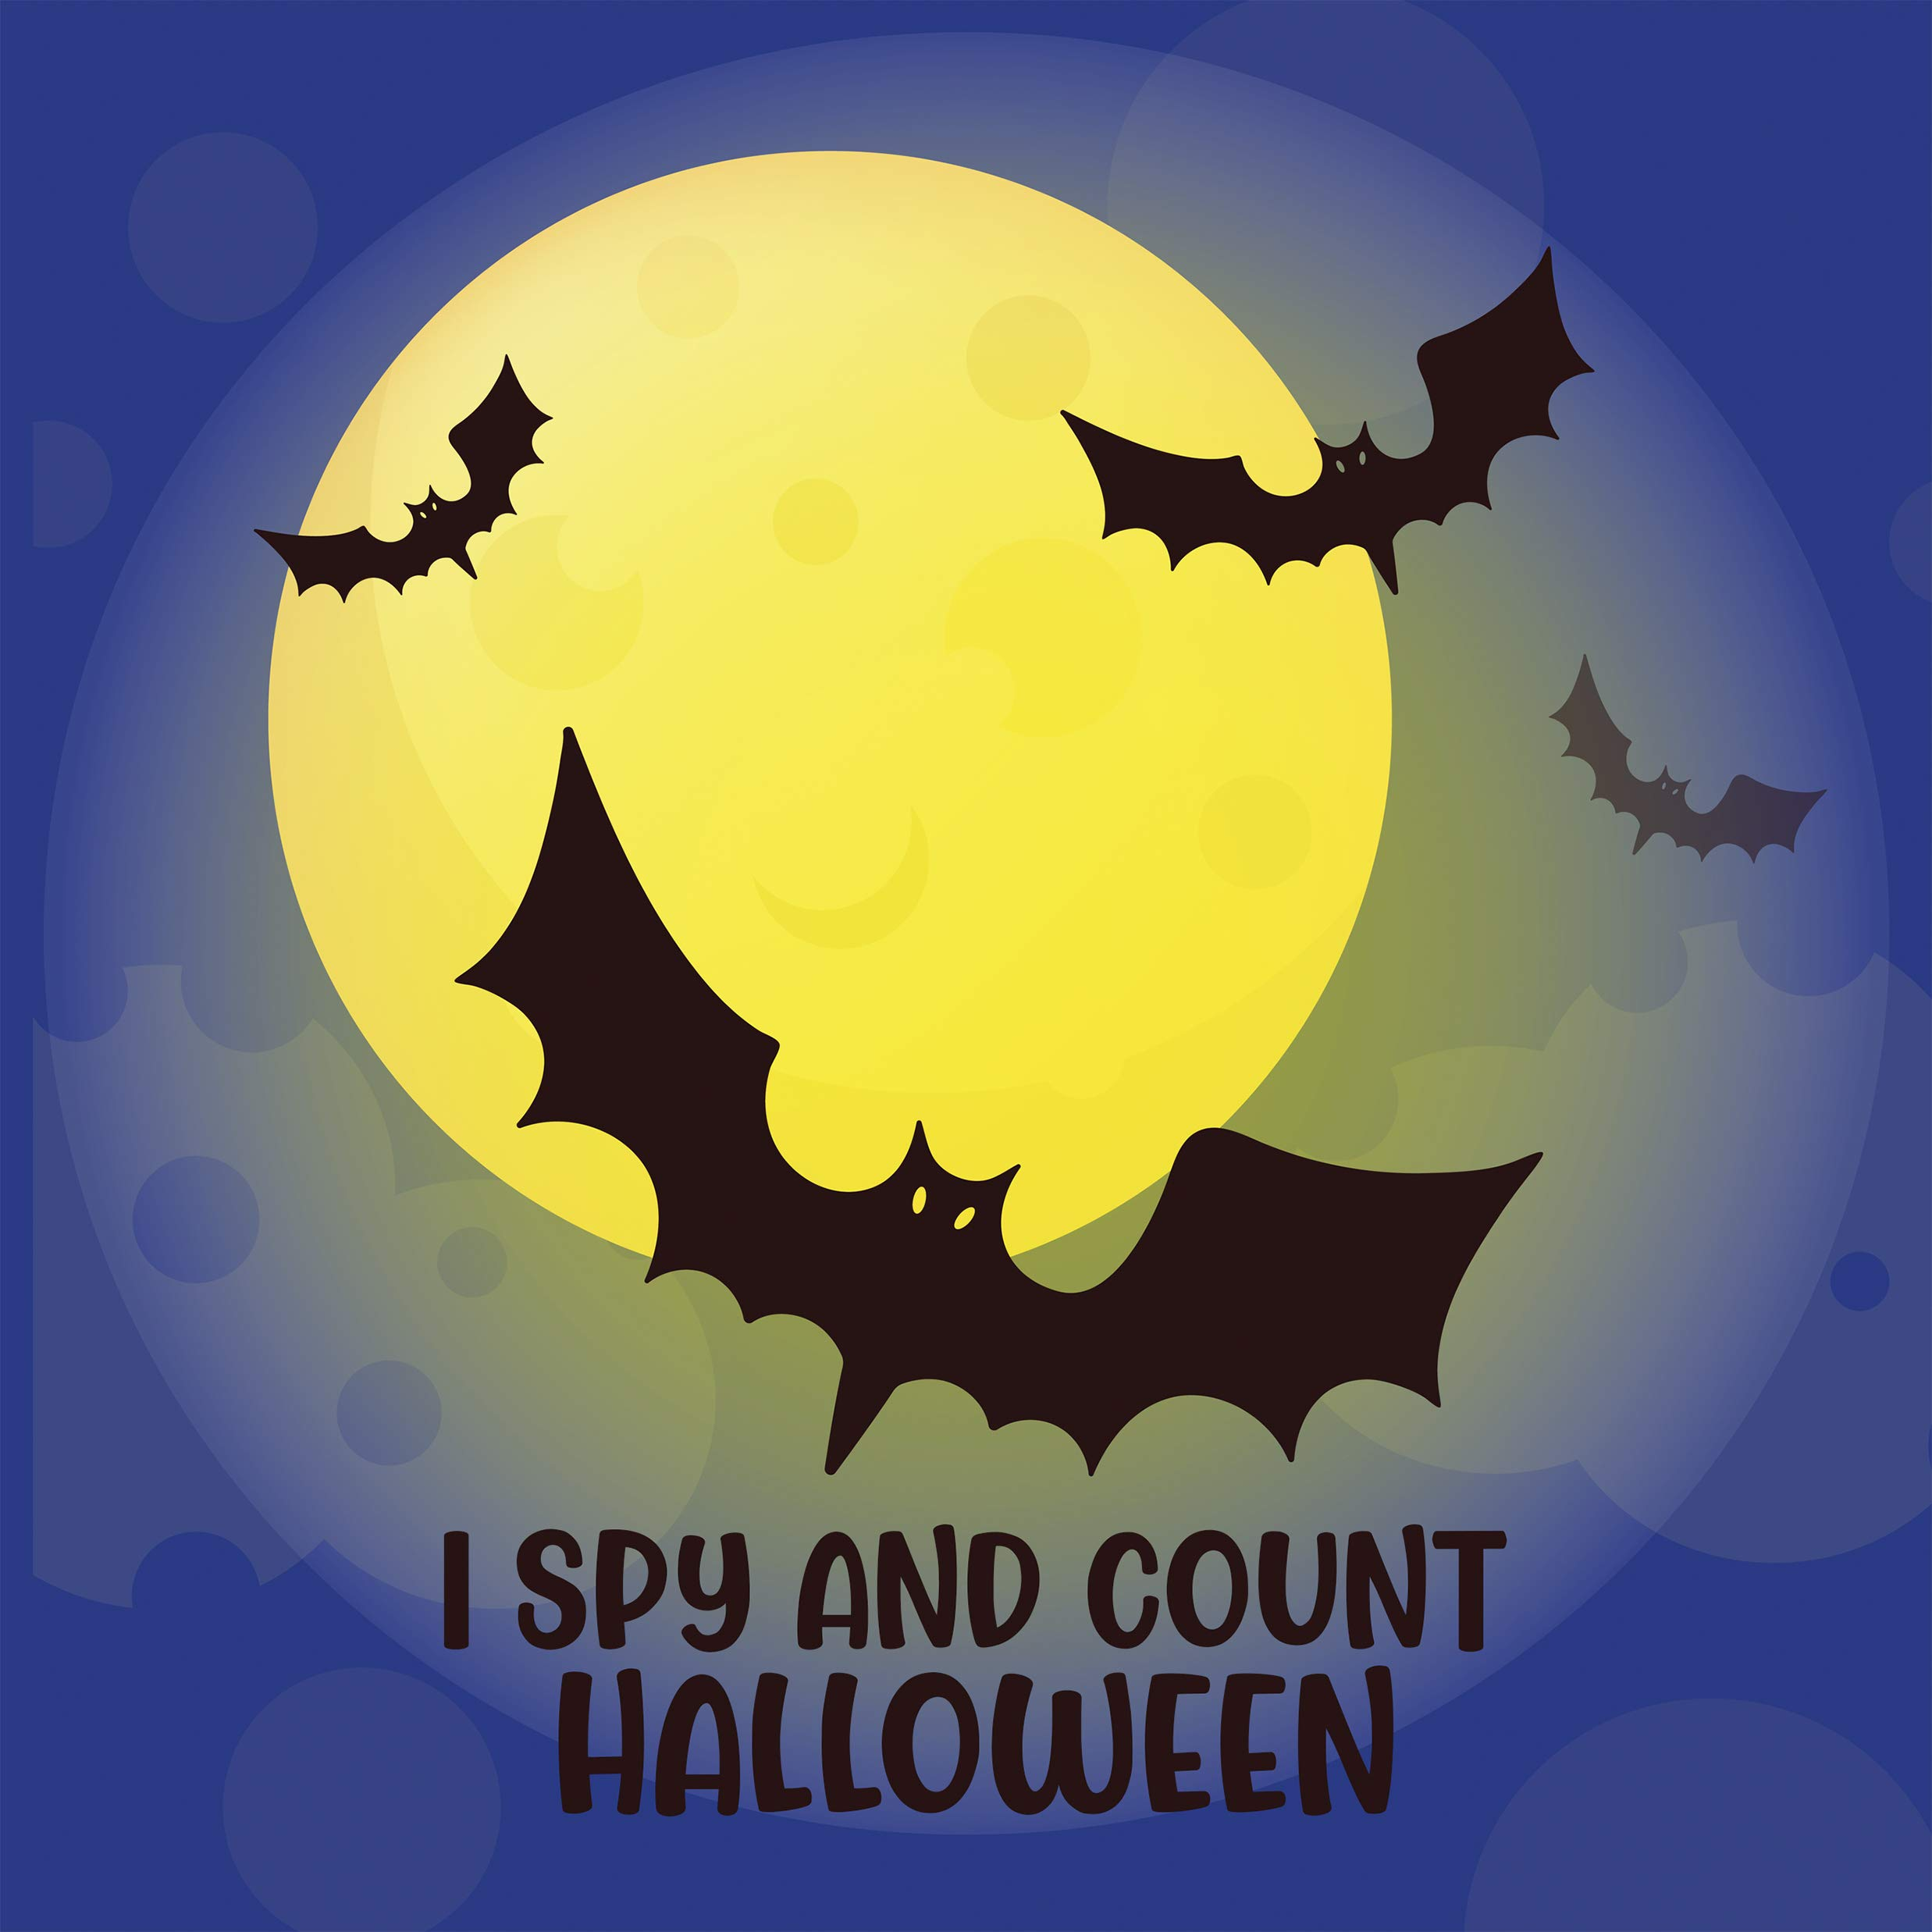 I Spy And Count Halloween: Ghosts Activity Book For Kids 3-5, Celebrate Day Of The Death With Skeleton, Monsters, Black Cat, Witch, , Bat, Wizards And Candy Fantasy Spooky Trick Or Treat